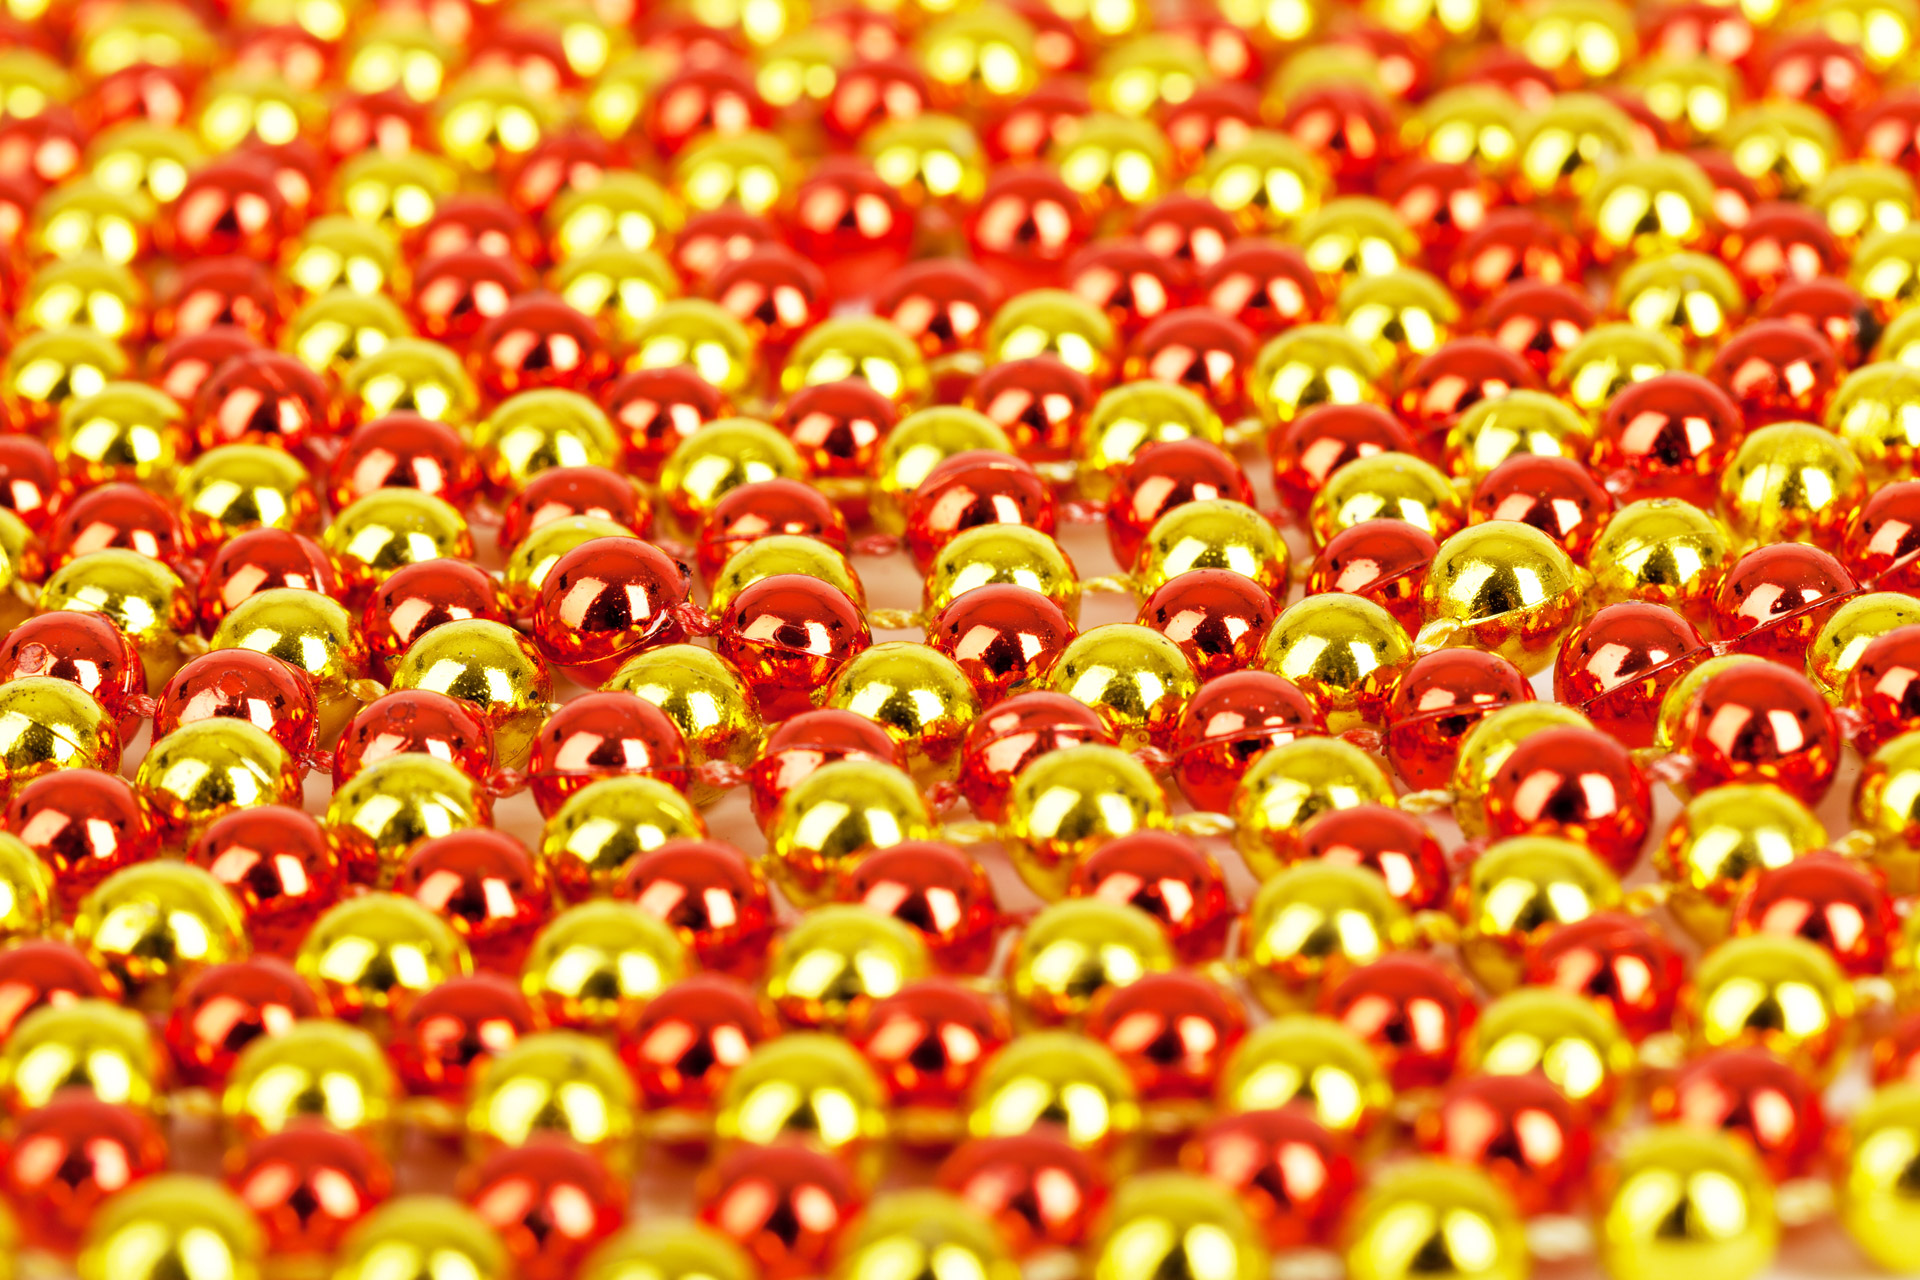 Red And Yellow Pattern Free Stock Photo  Public Domain